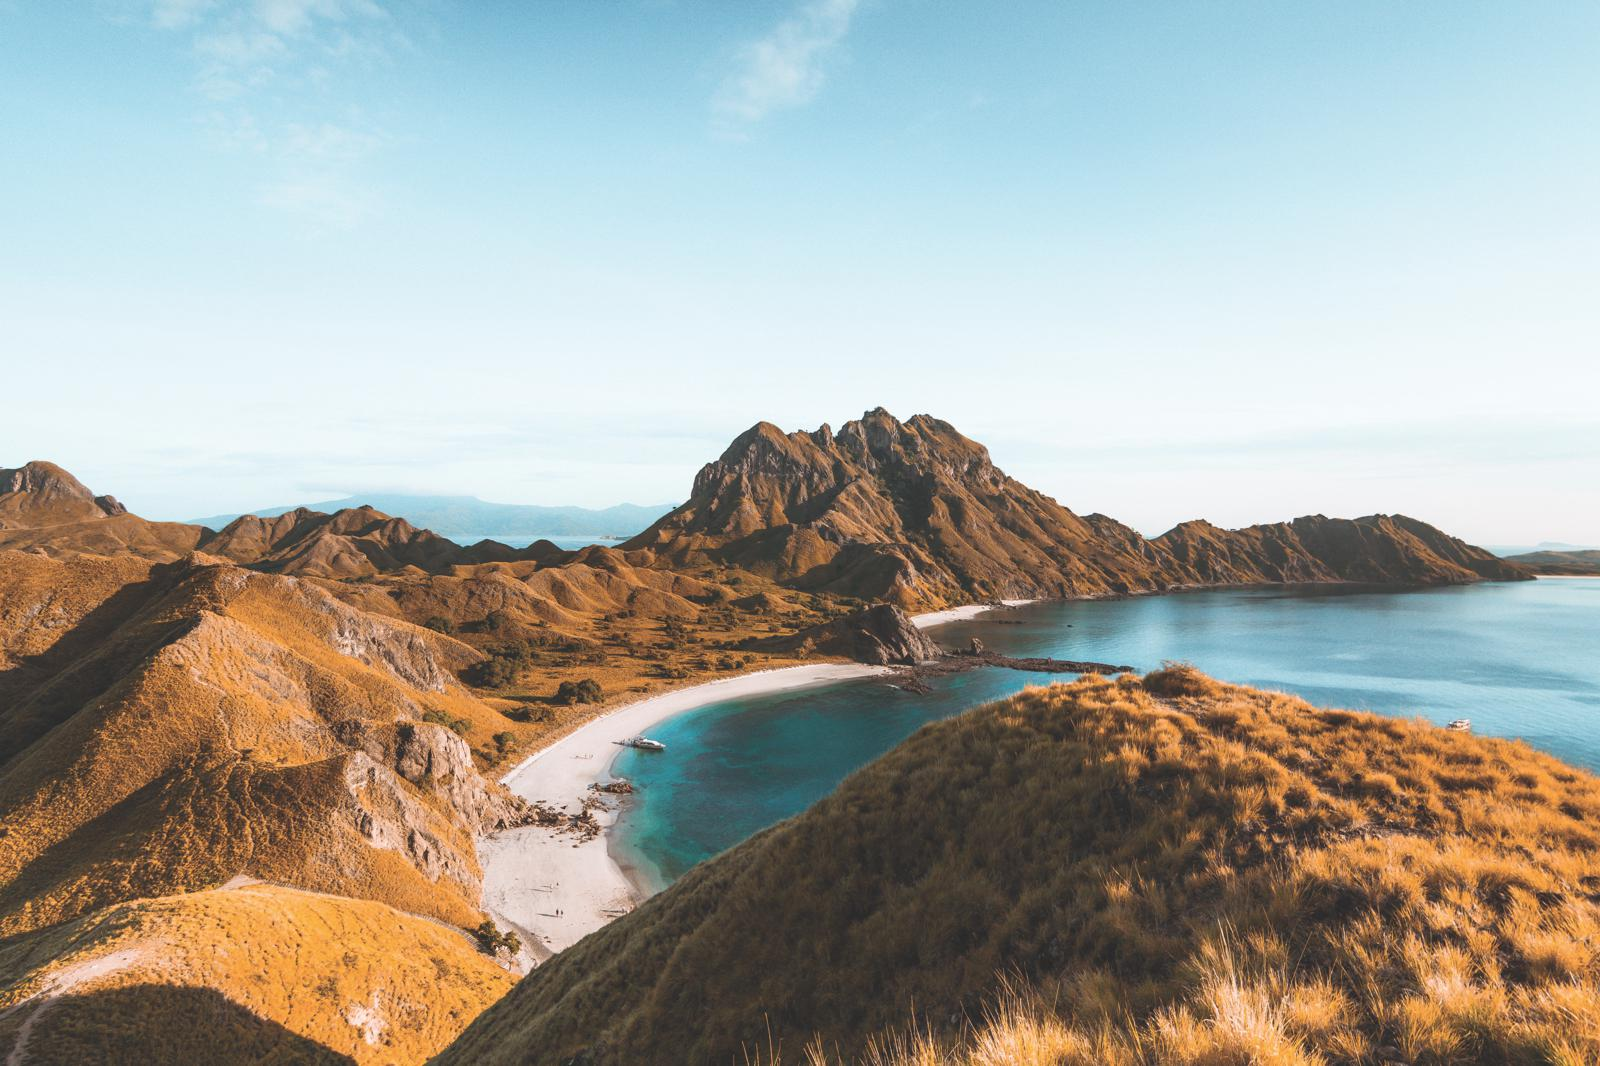 Padar Island in Indonesia – one of the three islands that make up the Komodo National Park.